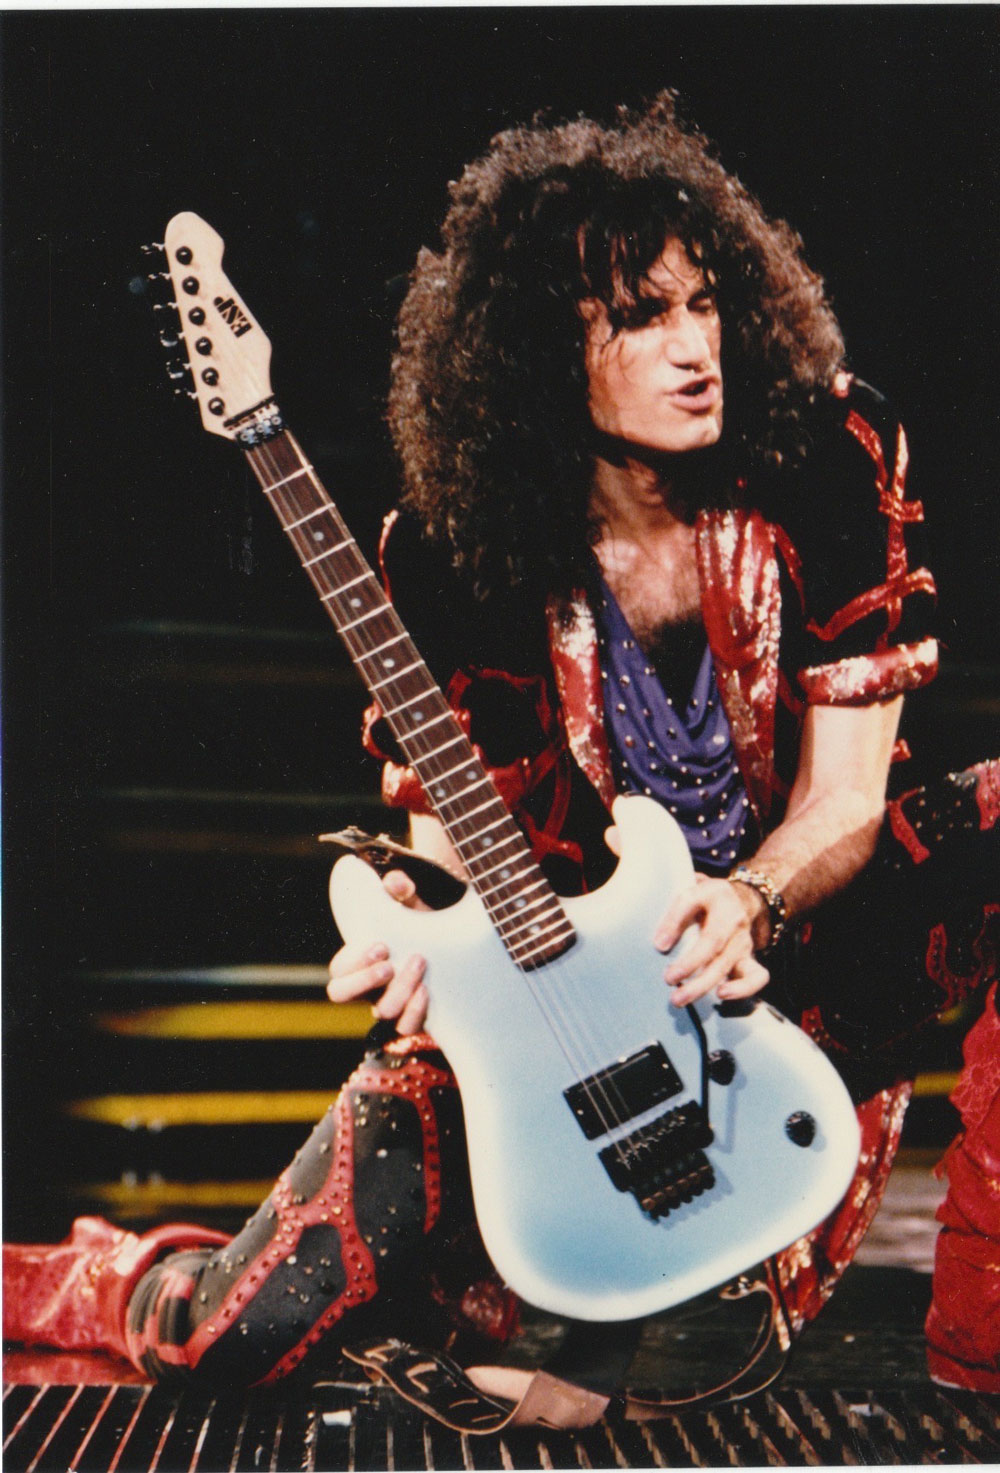 Bruce Kulick with his Blue ESP M1 Asylum 1985